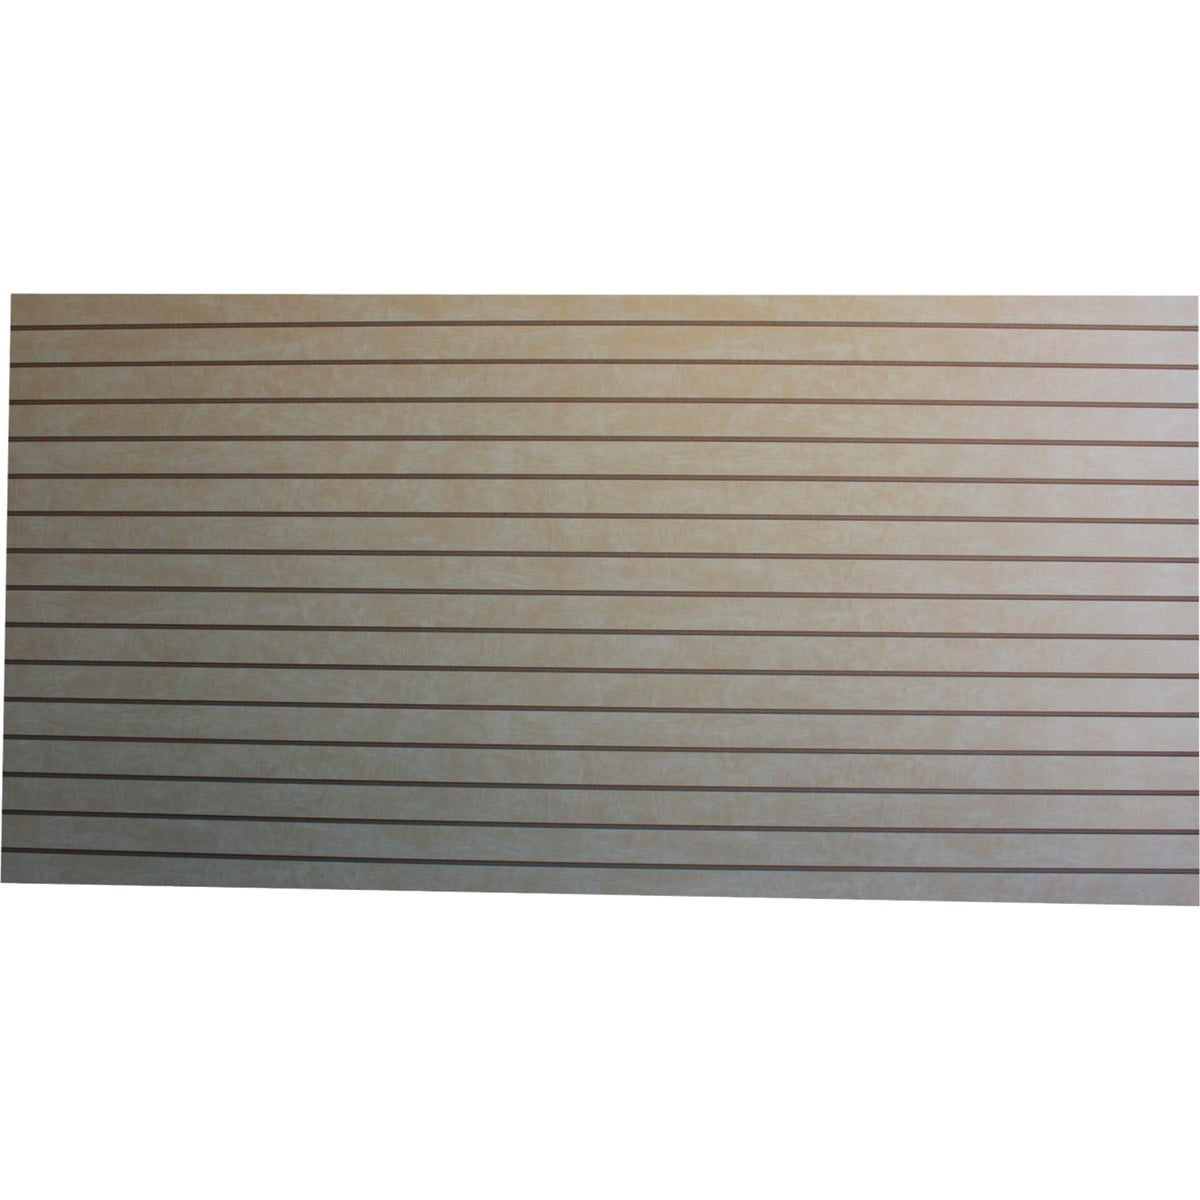 4X8 MAPLE SLATWALL - GLLIM01-03S-000 by Garage Escape